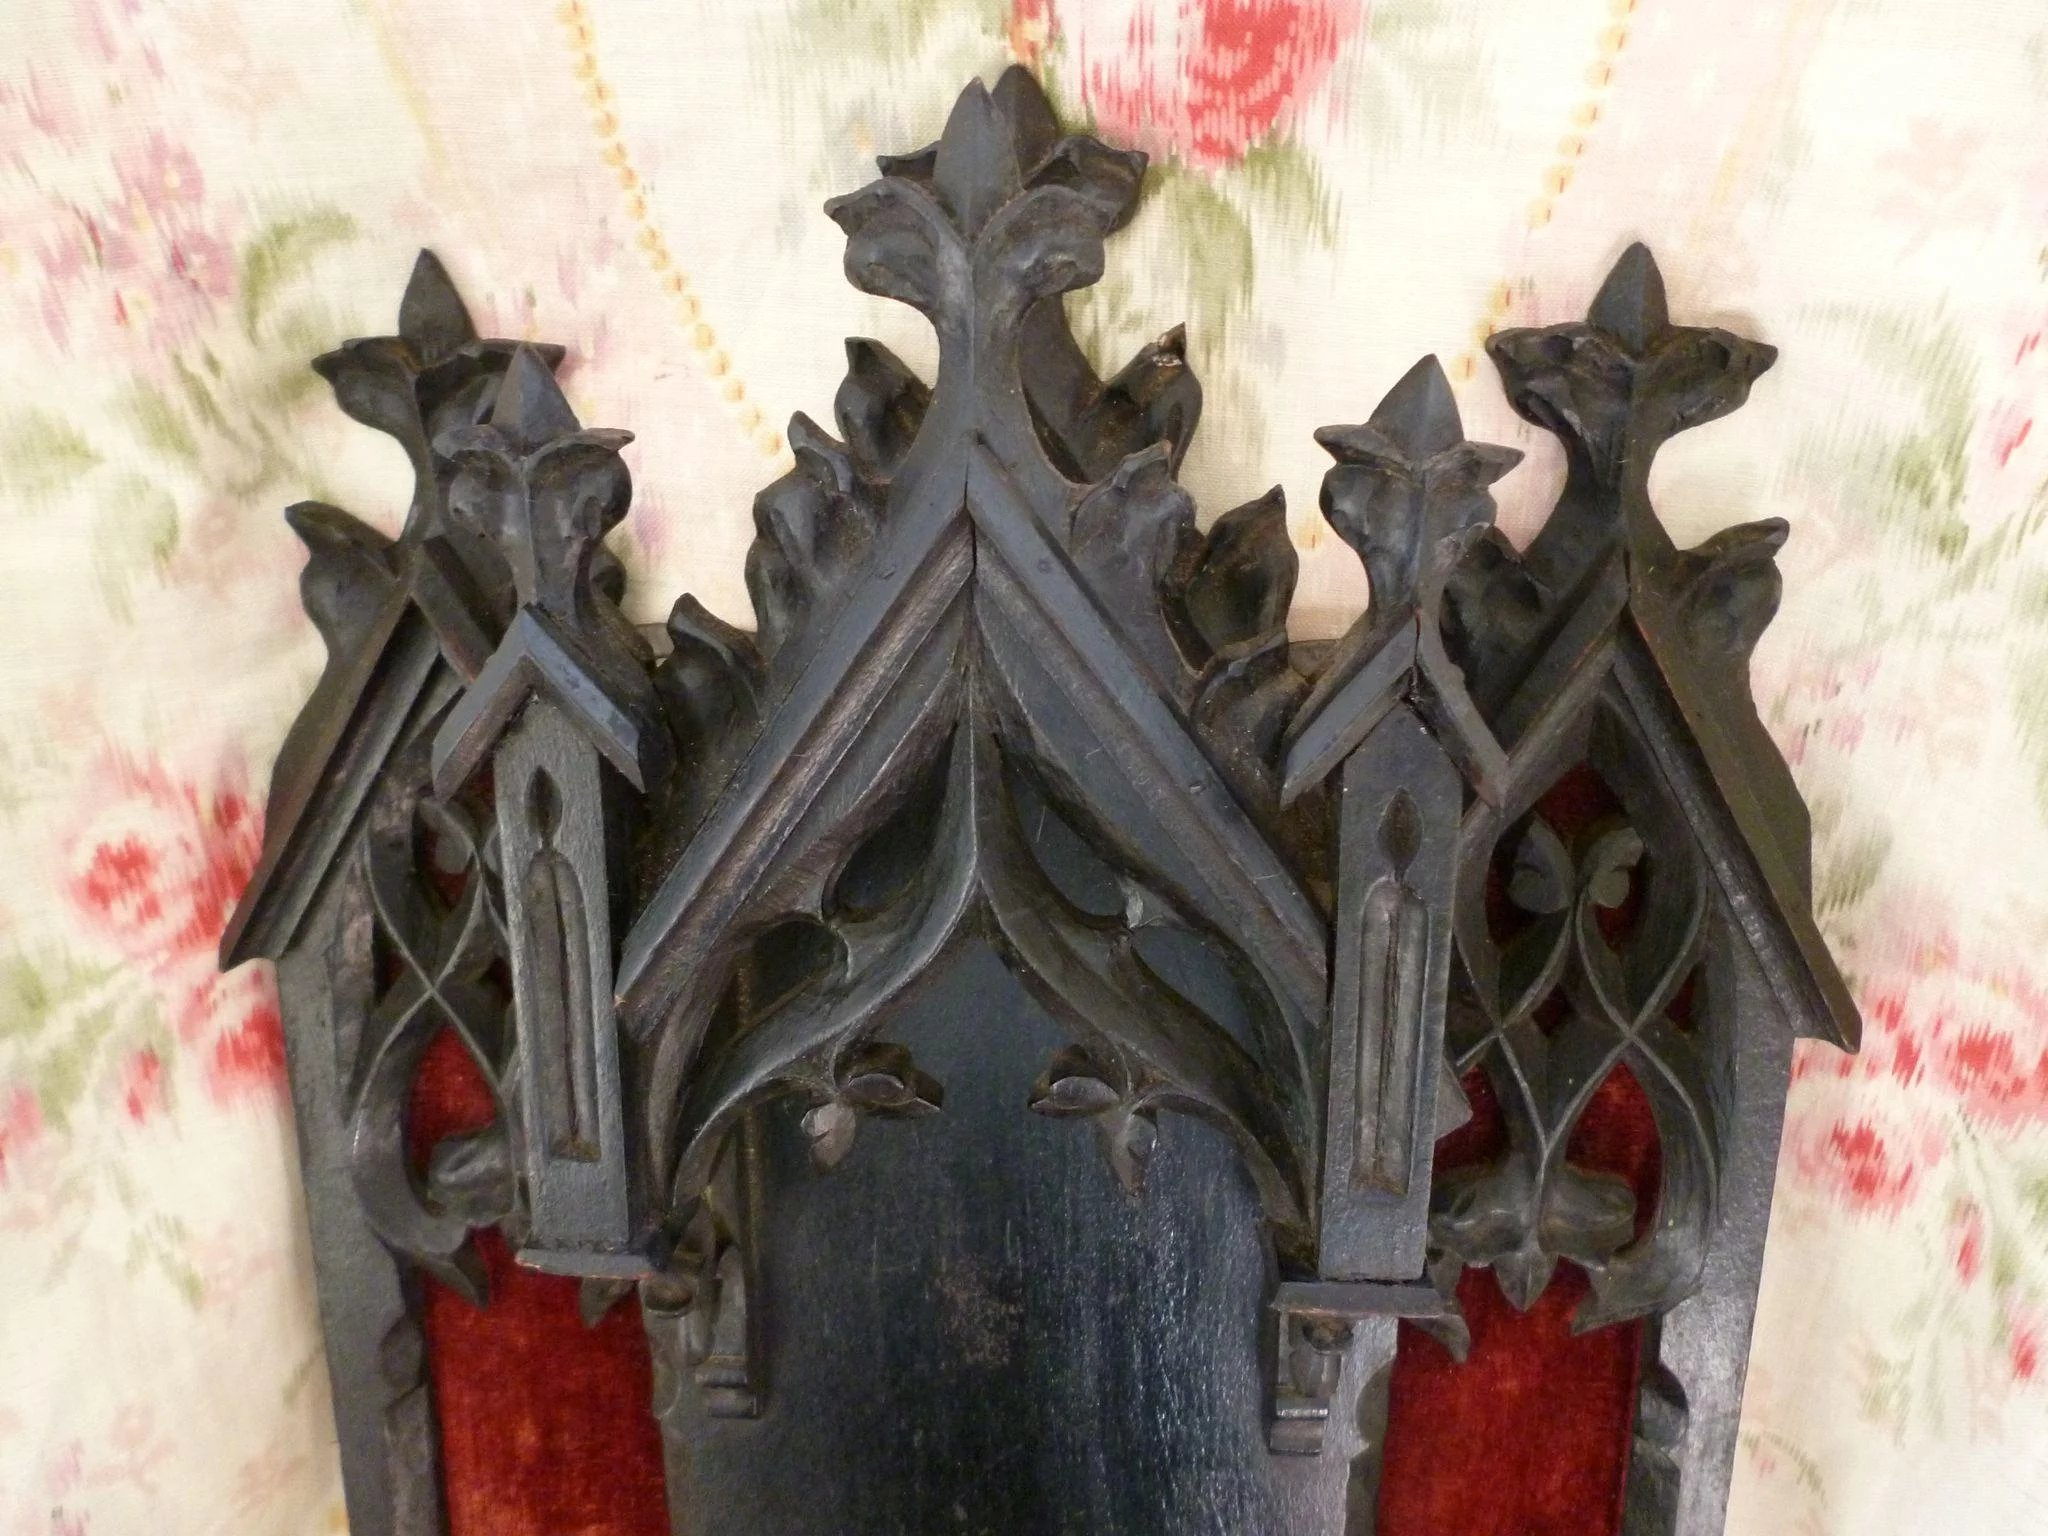 ornate antique french ebonized gothic style religious niche or display sold ruby lane. Black Bedroom Furniture Sets. Home Design Ideas